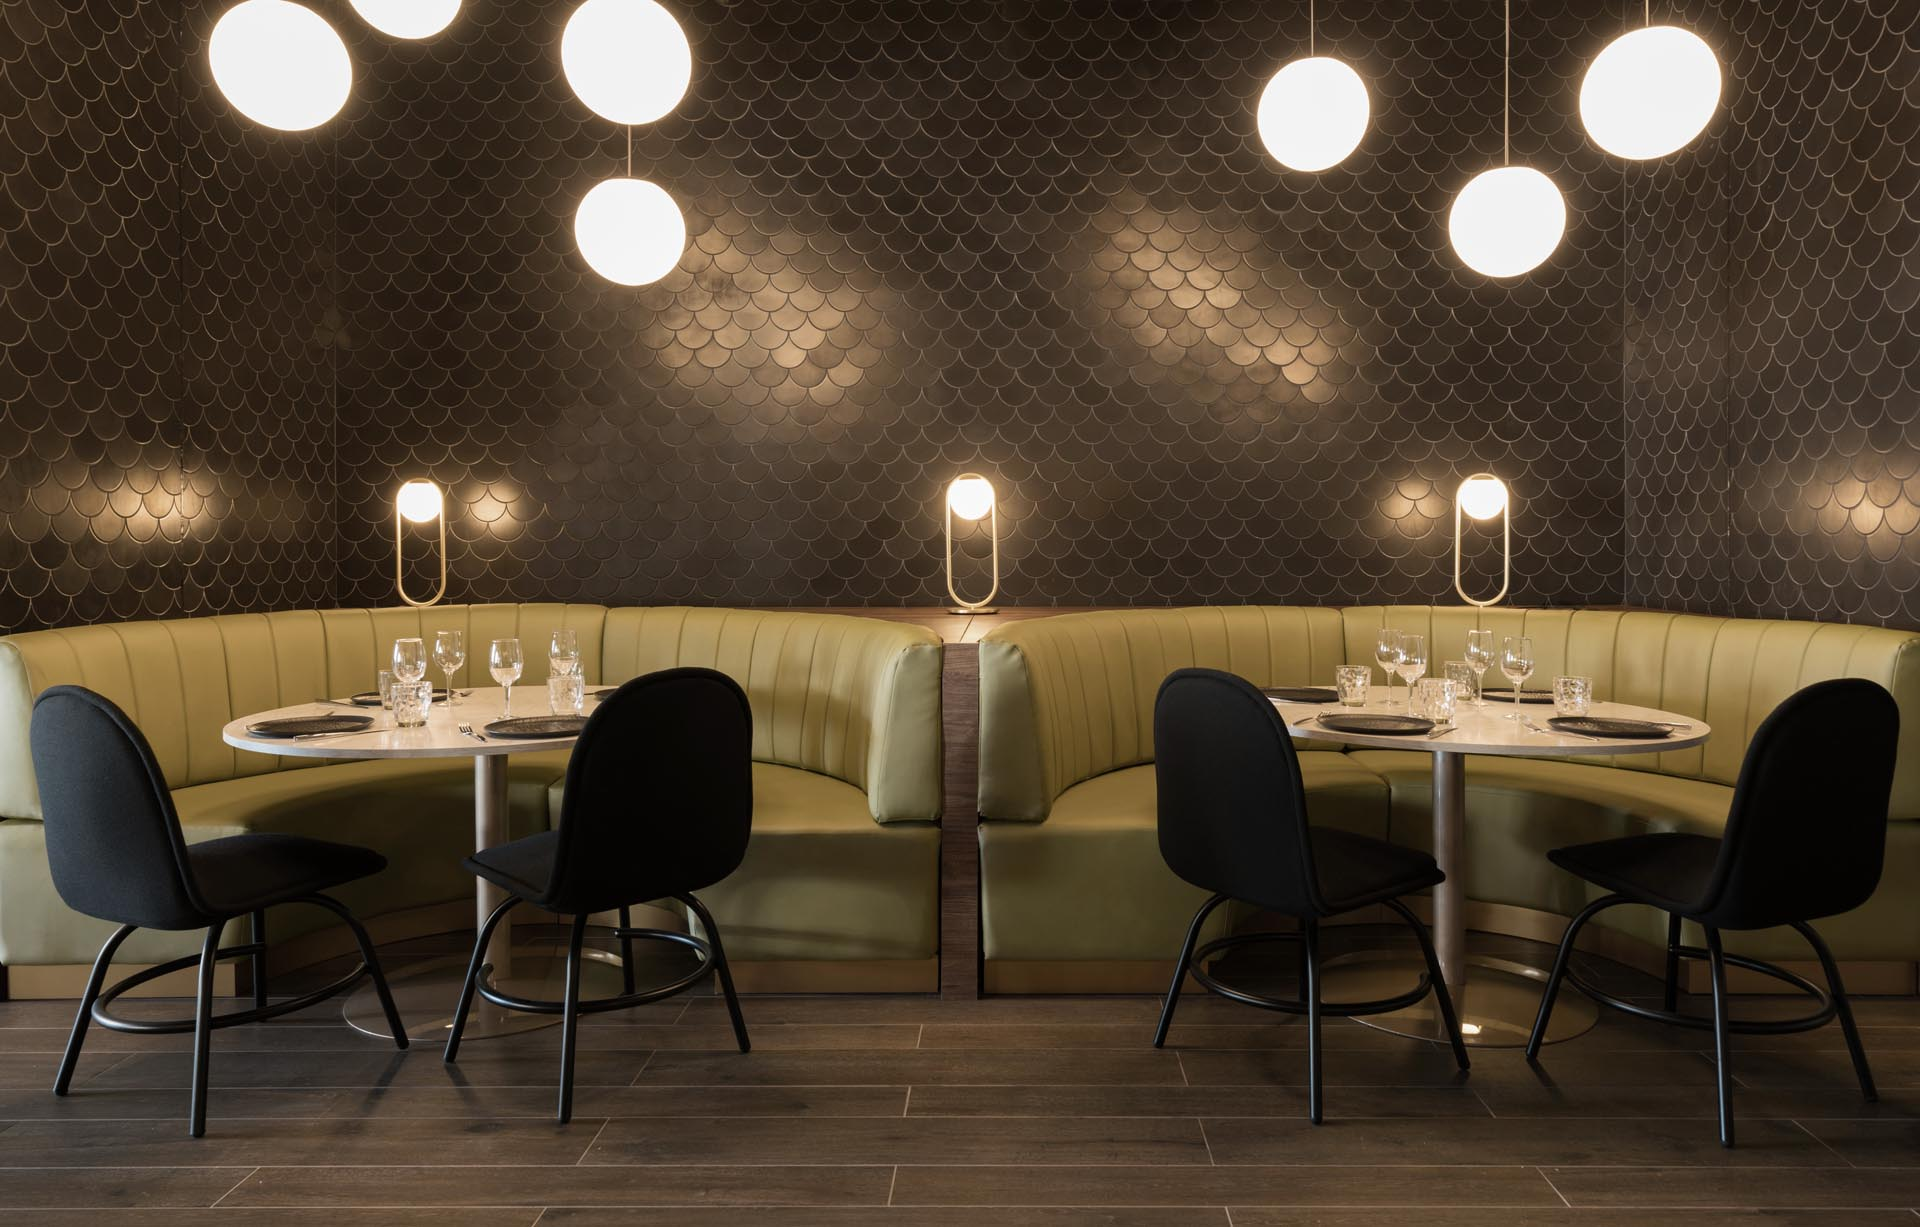 A modern restaurant with curved banquette booths, and black tiles designed to look like dragon scales.